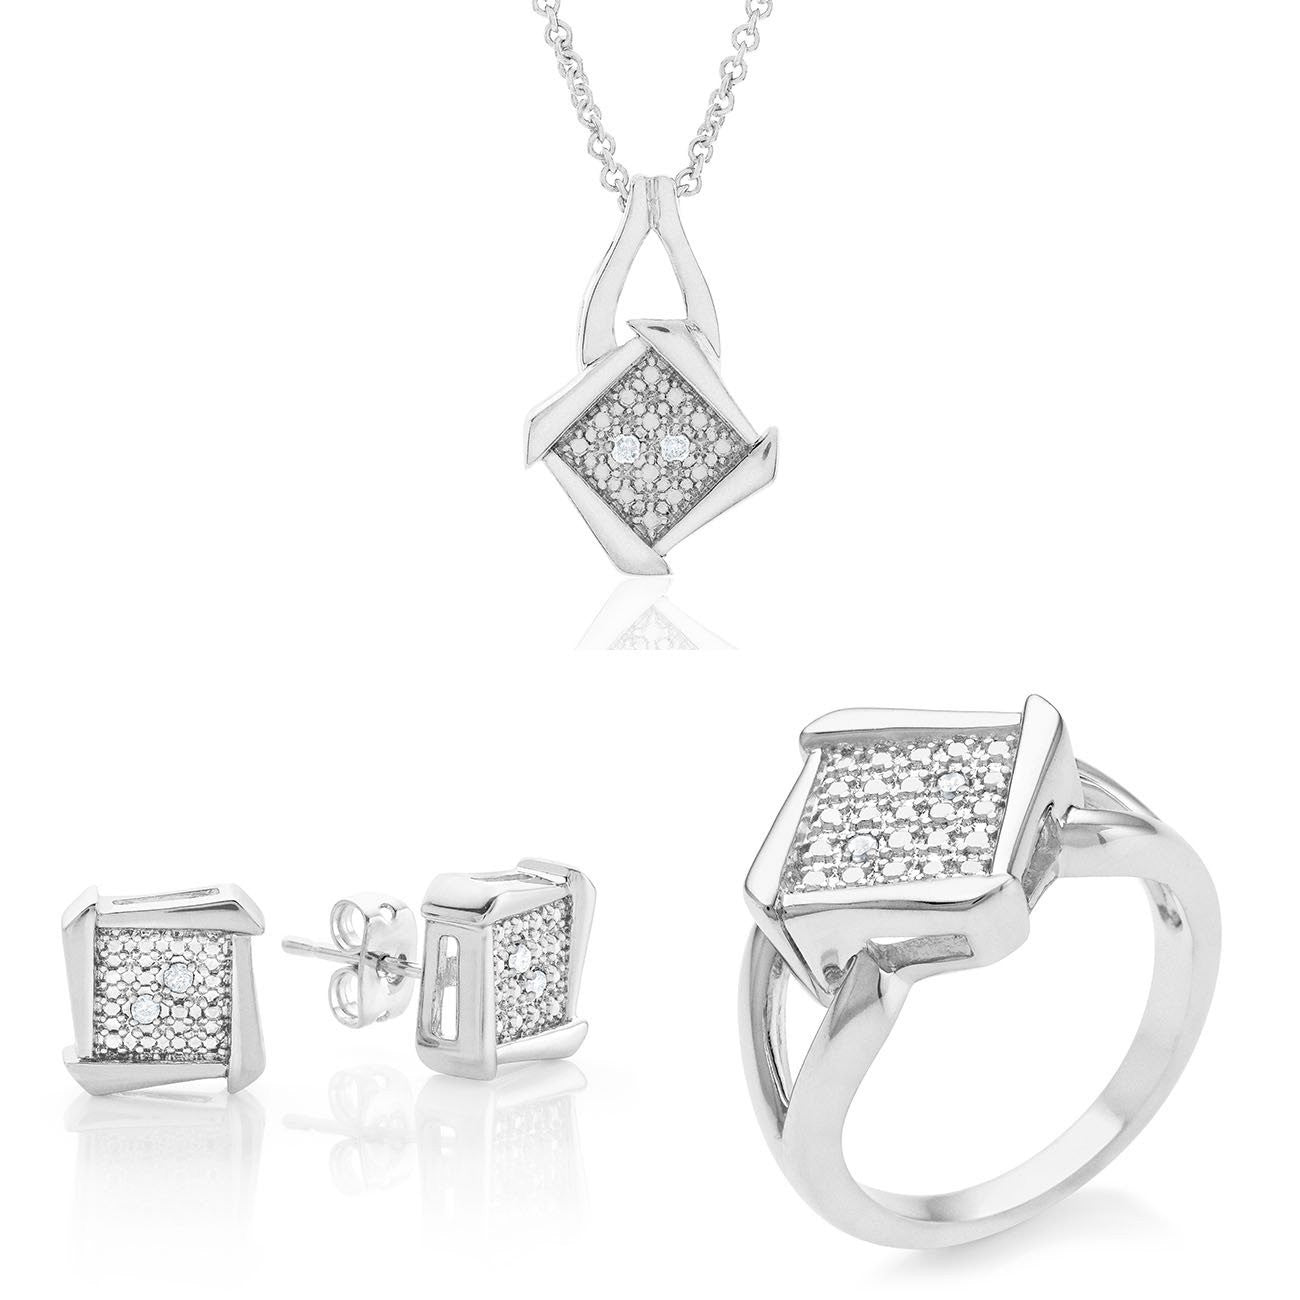 1/10 Carat Diamond Fashion Jewelry Set